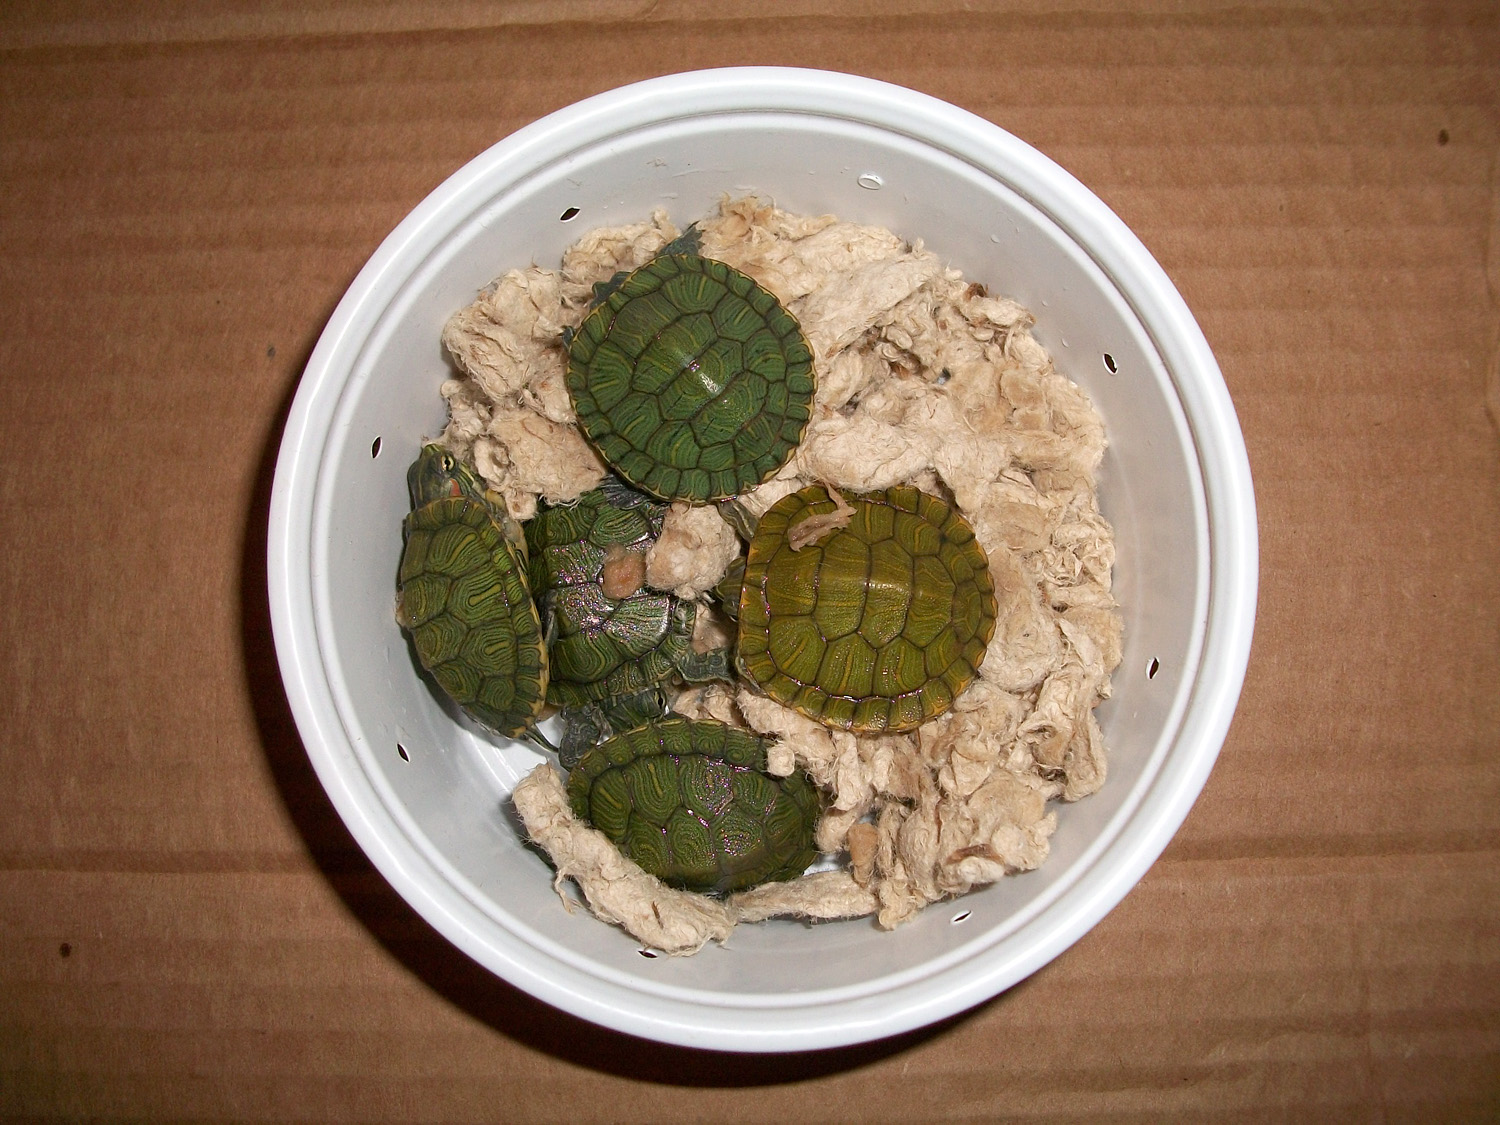 Hatchling turtles